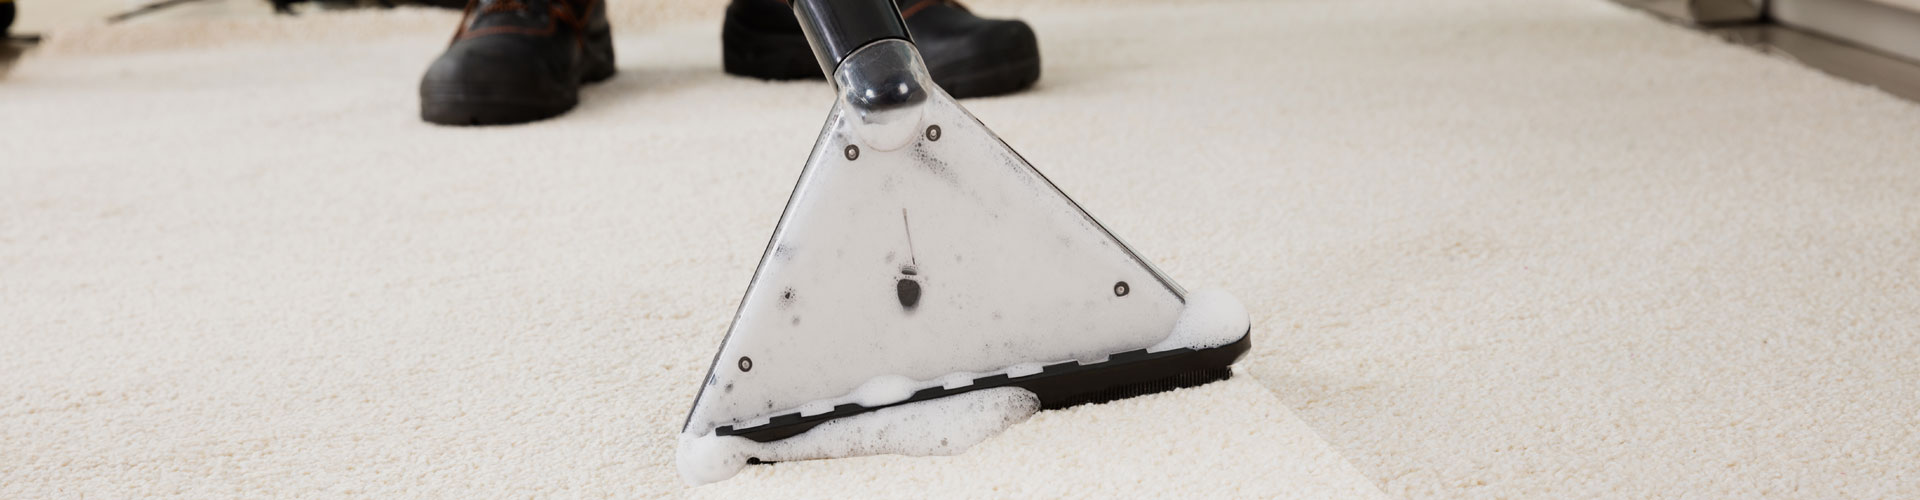 A Person Cleaning Carpet With Vacuum Cleaner